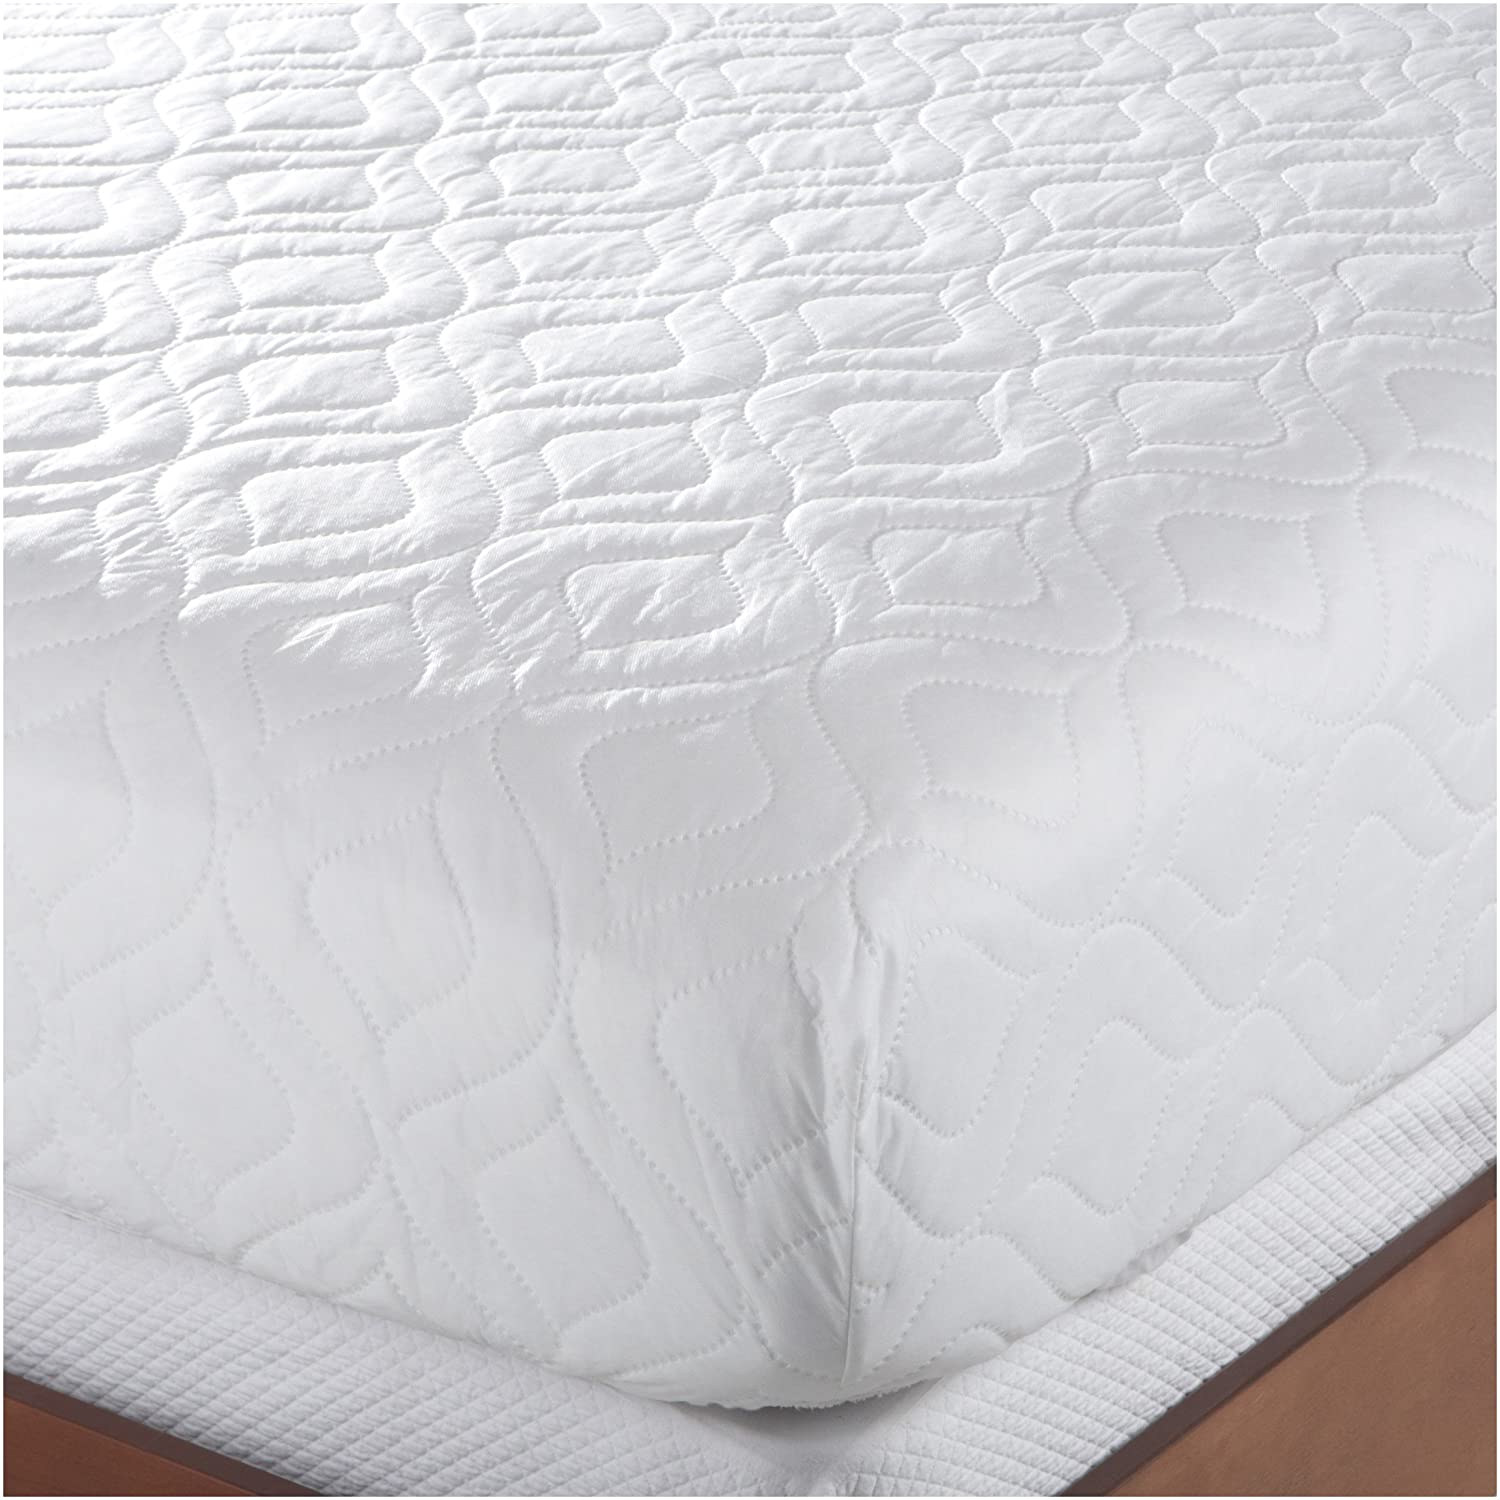 sizes multiple innerspring topper ip walmart pillow com sleep mattress inch modern top